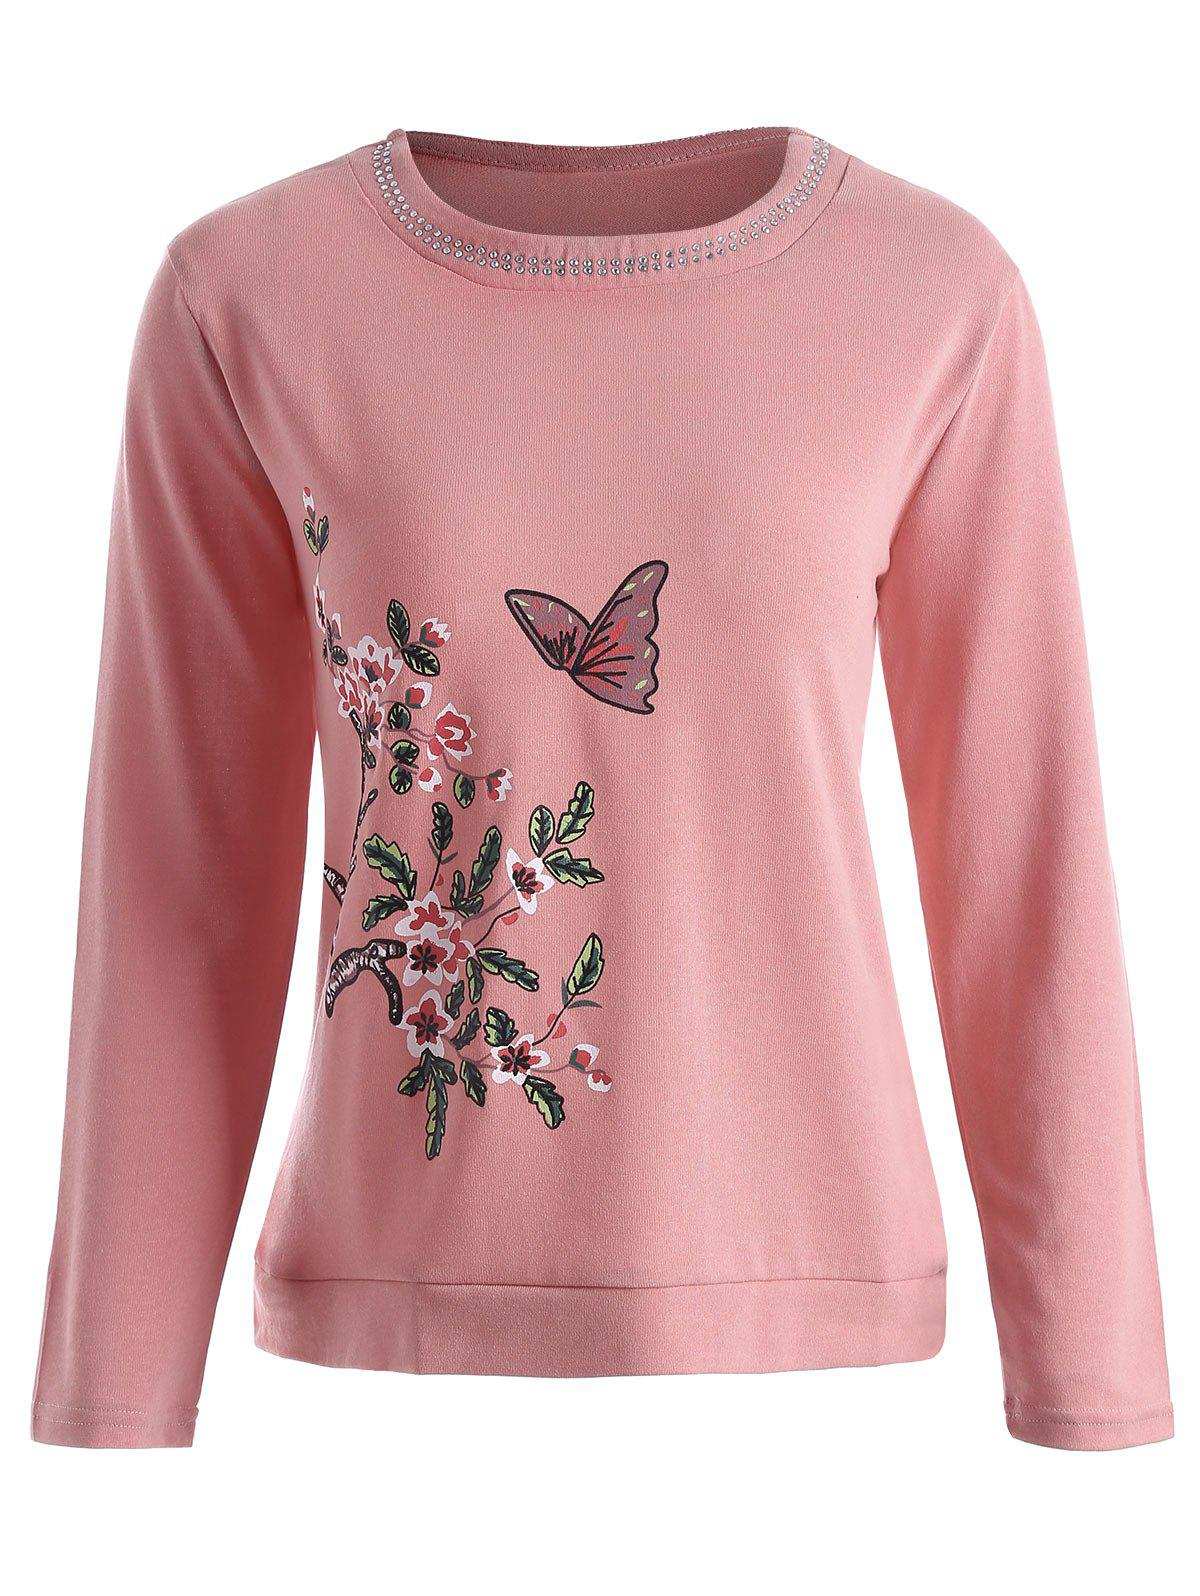 21d32464bb6 2019 Plus Size Butterfly Floral Print Rhinestone Embellished Tee ...